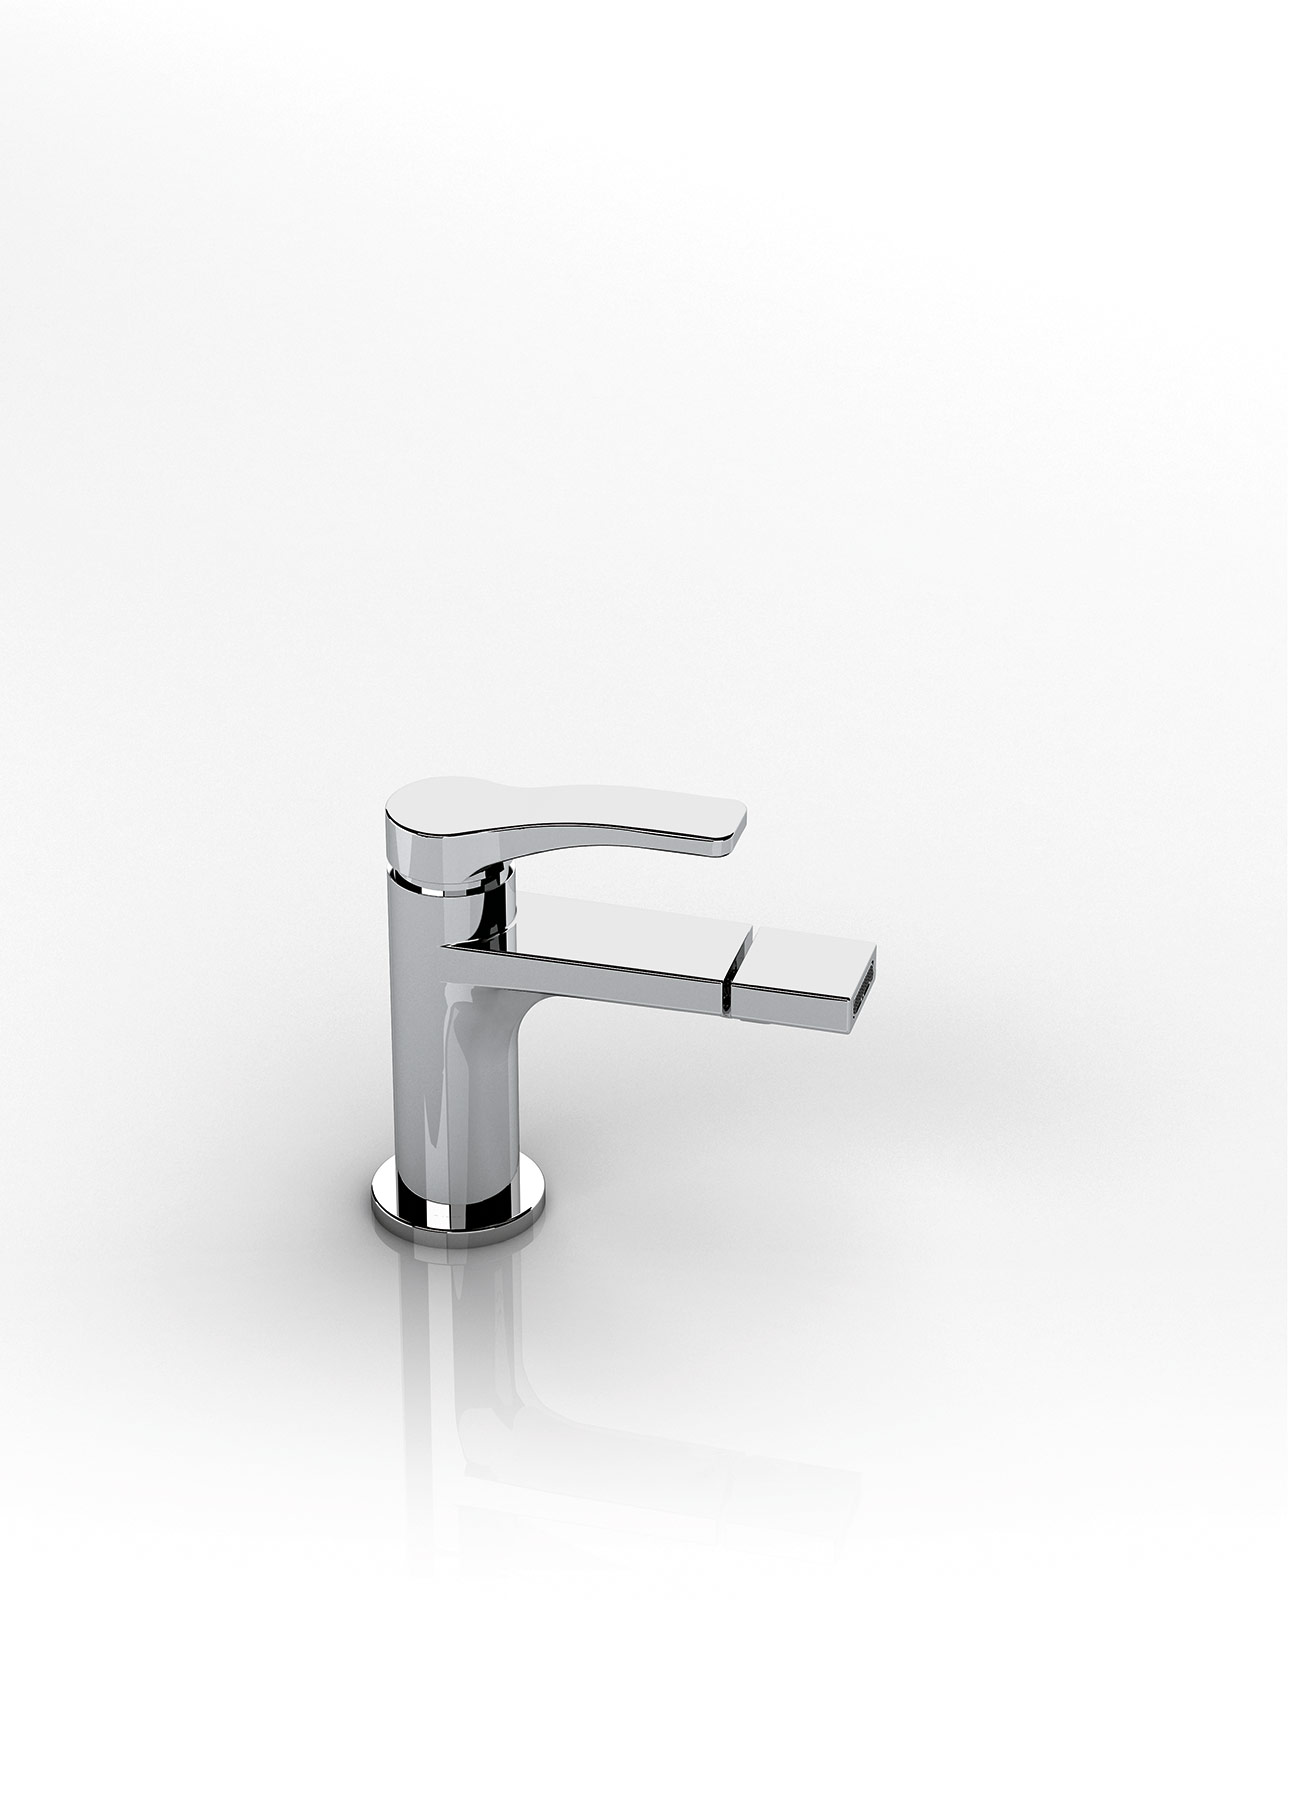 Transitional Lissoni Deck Mount Bidet Faucet